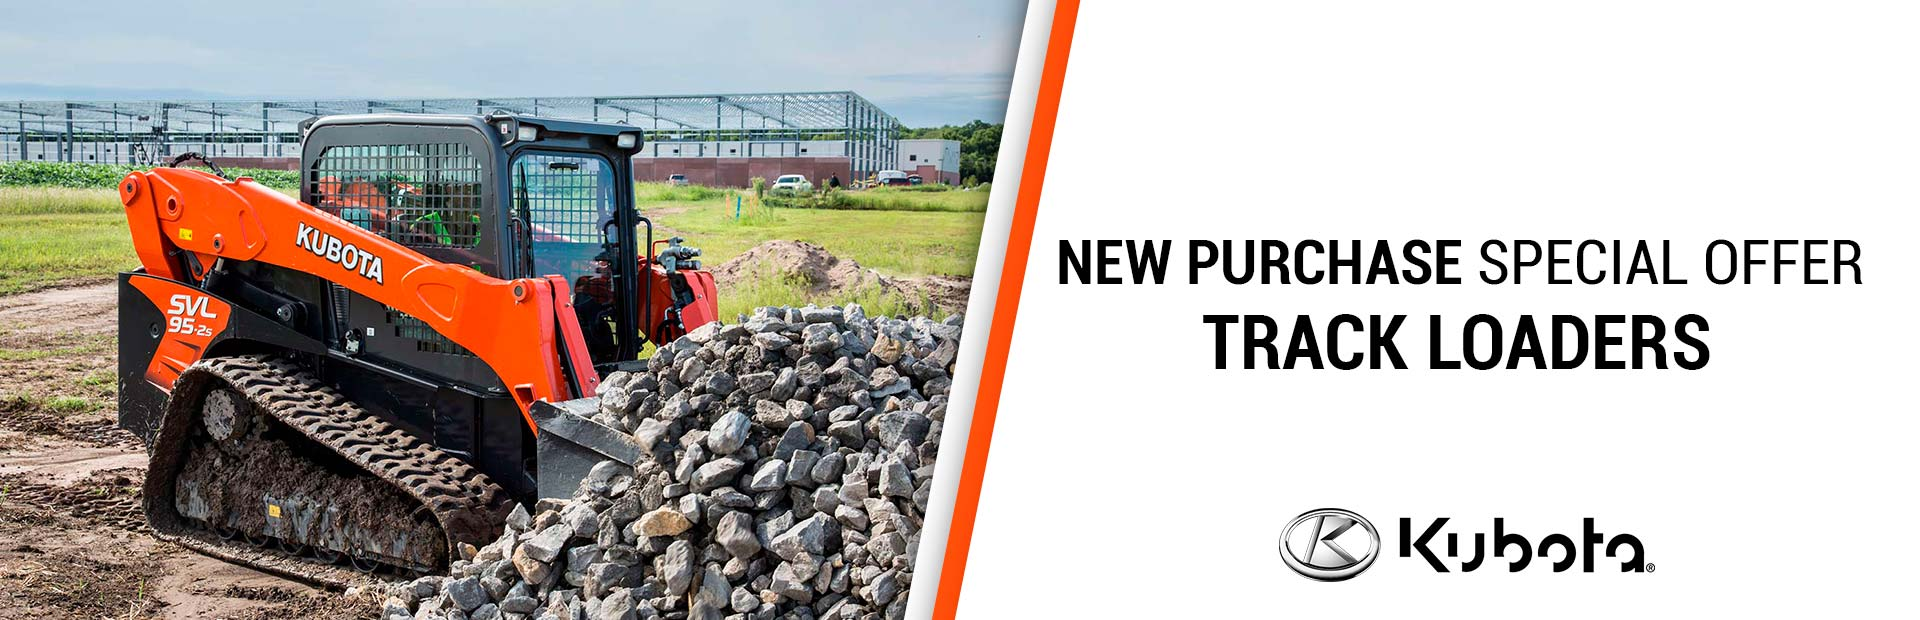 Kubota: NEW PURCHASE SPECIAL OFFERS-TRACK LOADERS